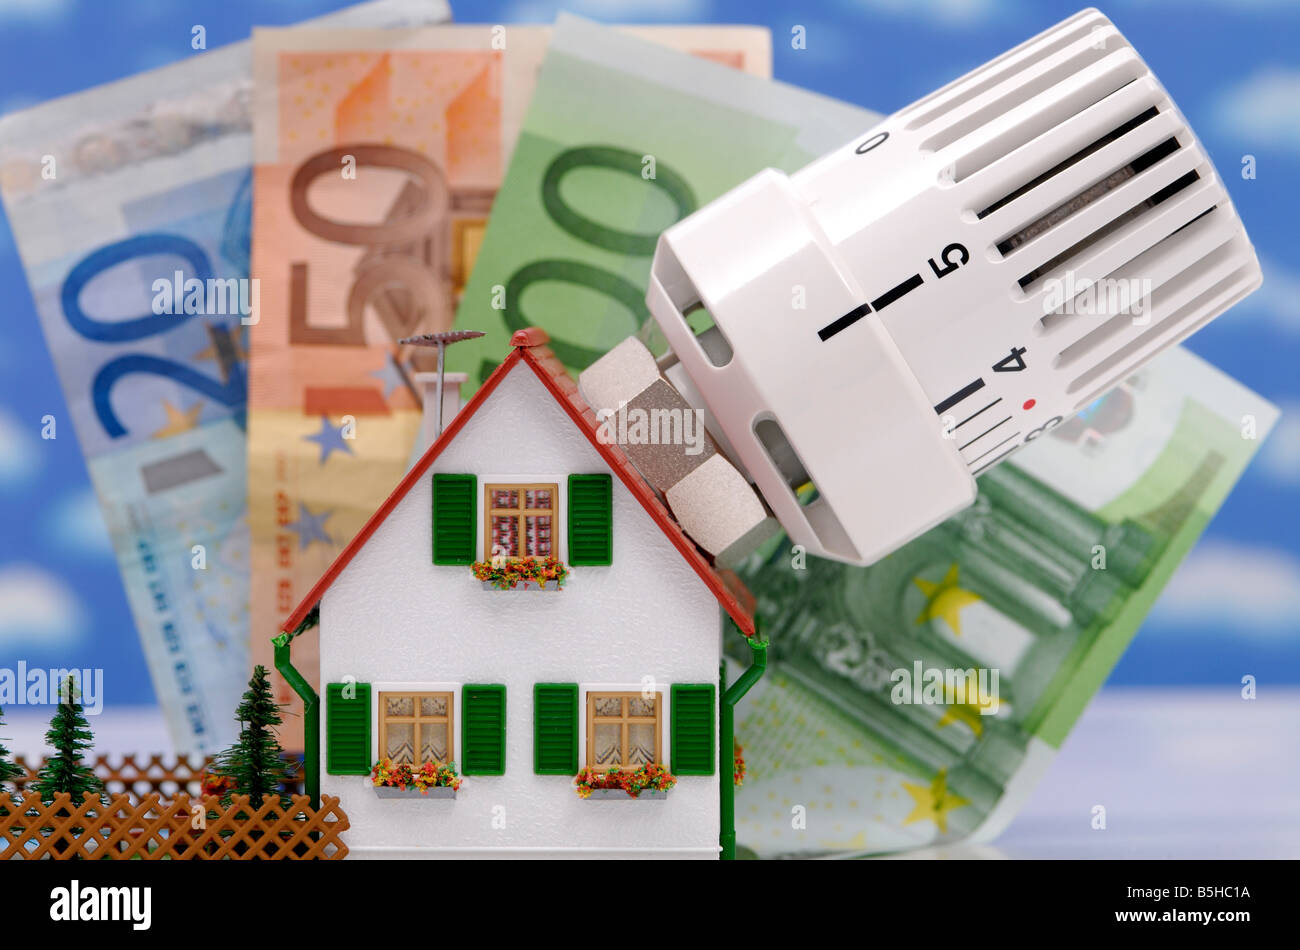 bank notes, a house and a heating, symbol for heating costs - Stock Image